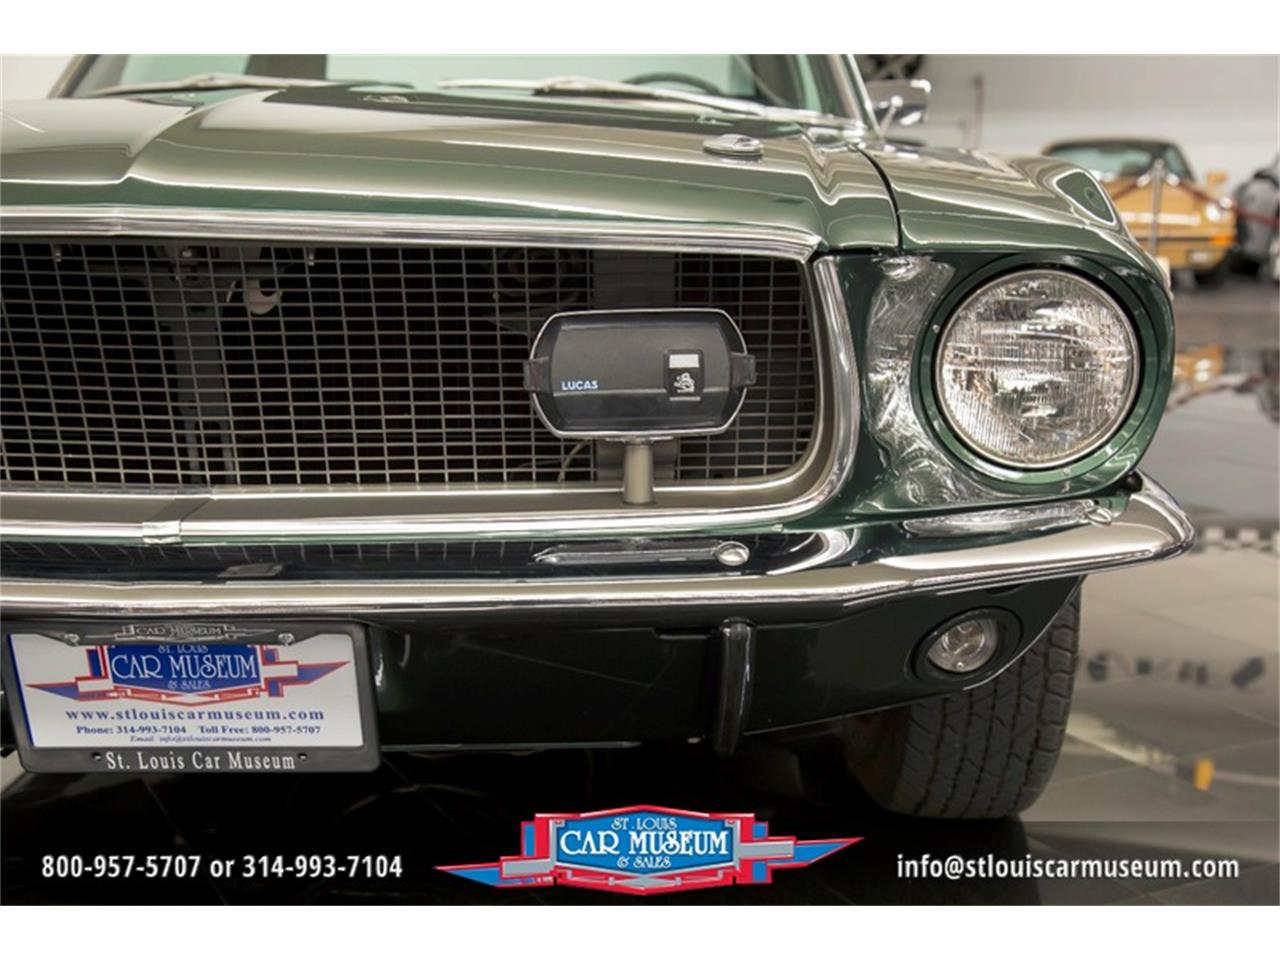 Large Picture of Classic '68 Mustang GT/CS (California Special) located in St. Louis Missouri - $59,900.00 Offered by St. Louis Car Museum - LWVZ